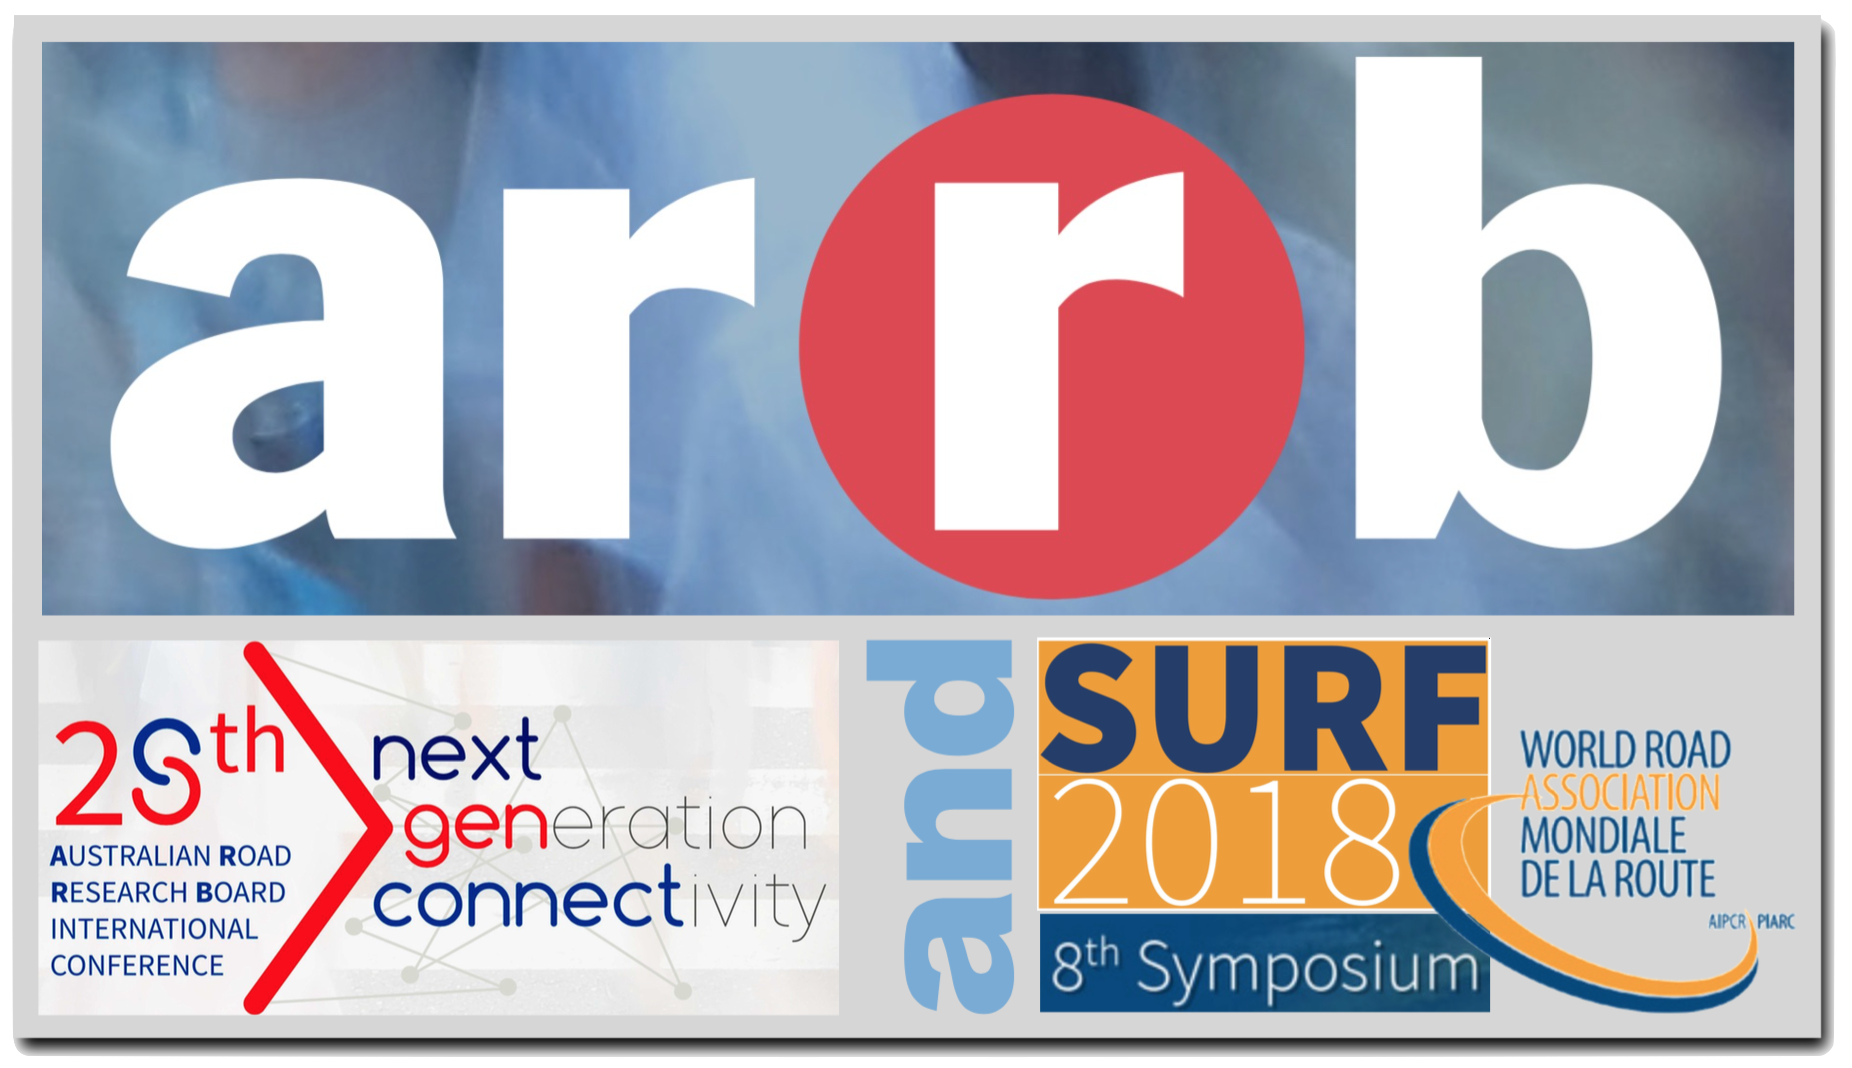 ARRB 28th International Conference & AARB/PIARC 8th Symposium: SURF 2018 to be Held April 29 to May 4, 2018, Brisbane, Australia